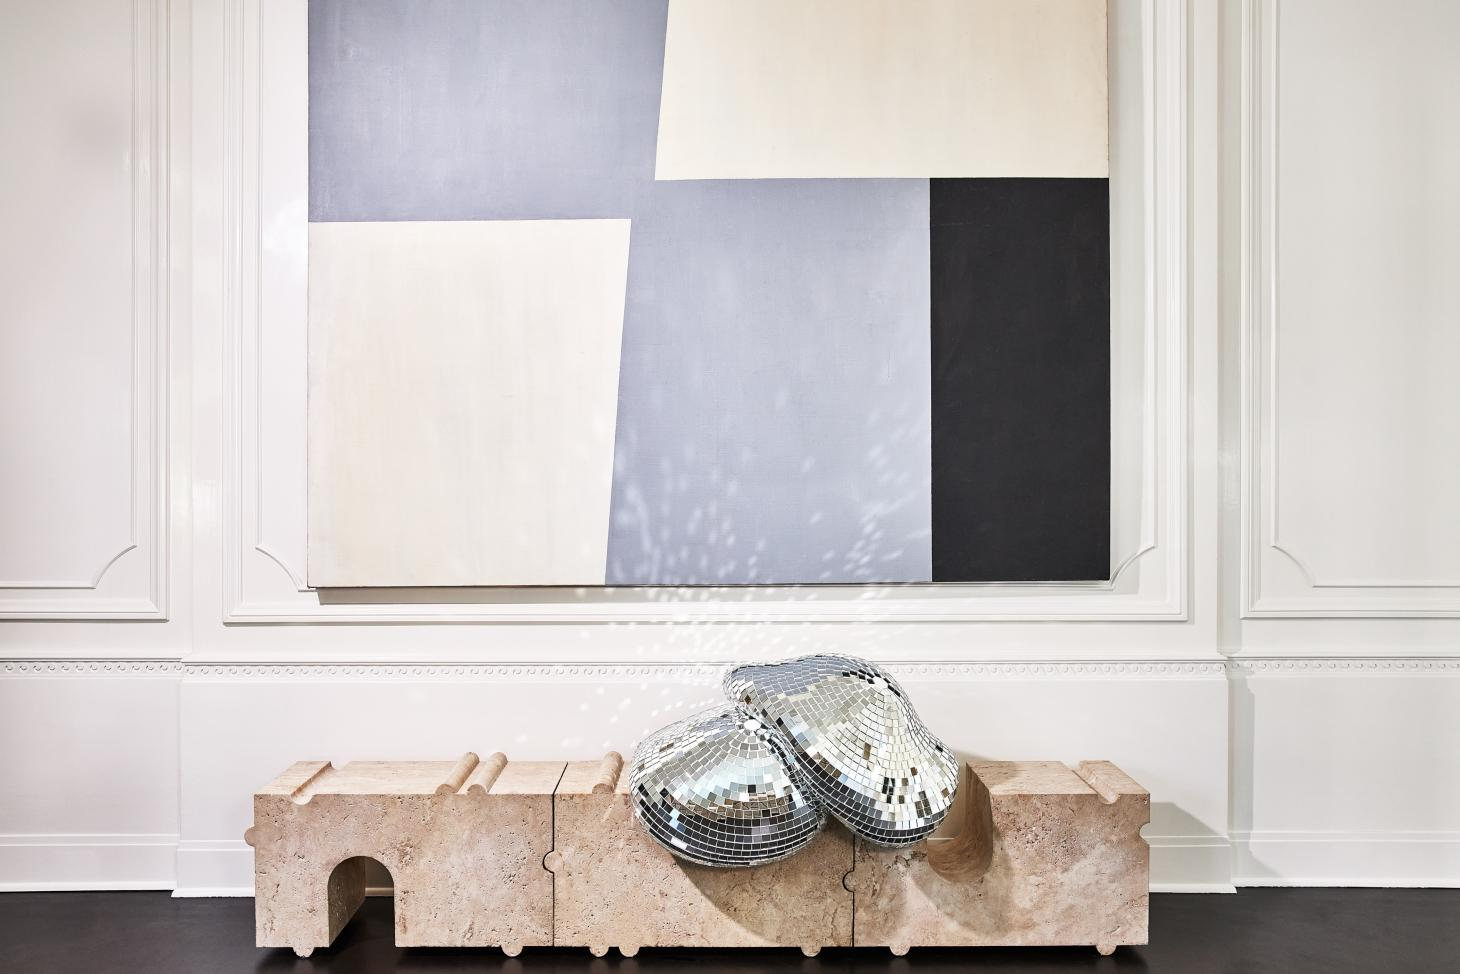 Two melted disco balls on a marble bench, designed by Rotganzen for the Kelly Wearstler shop